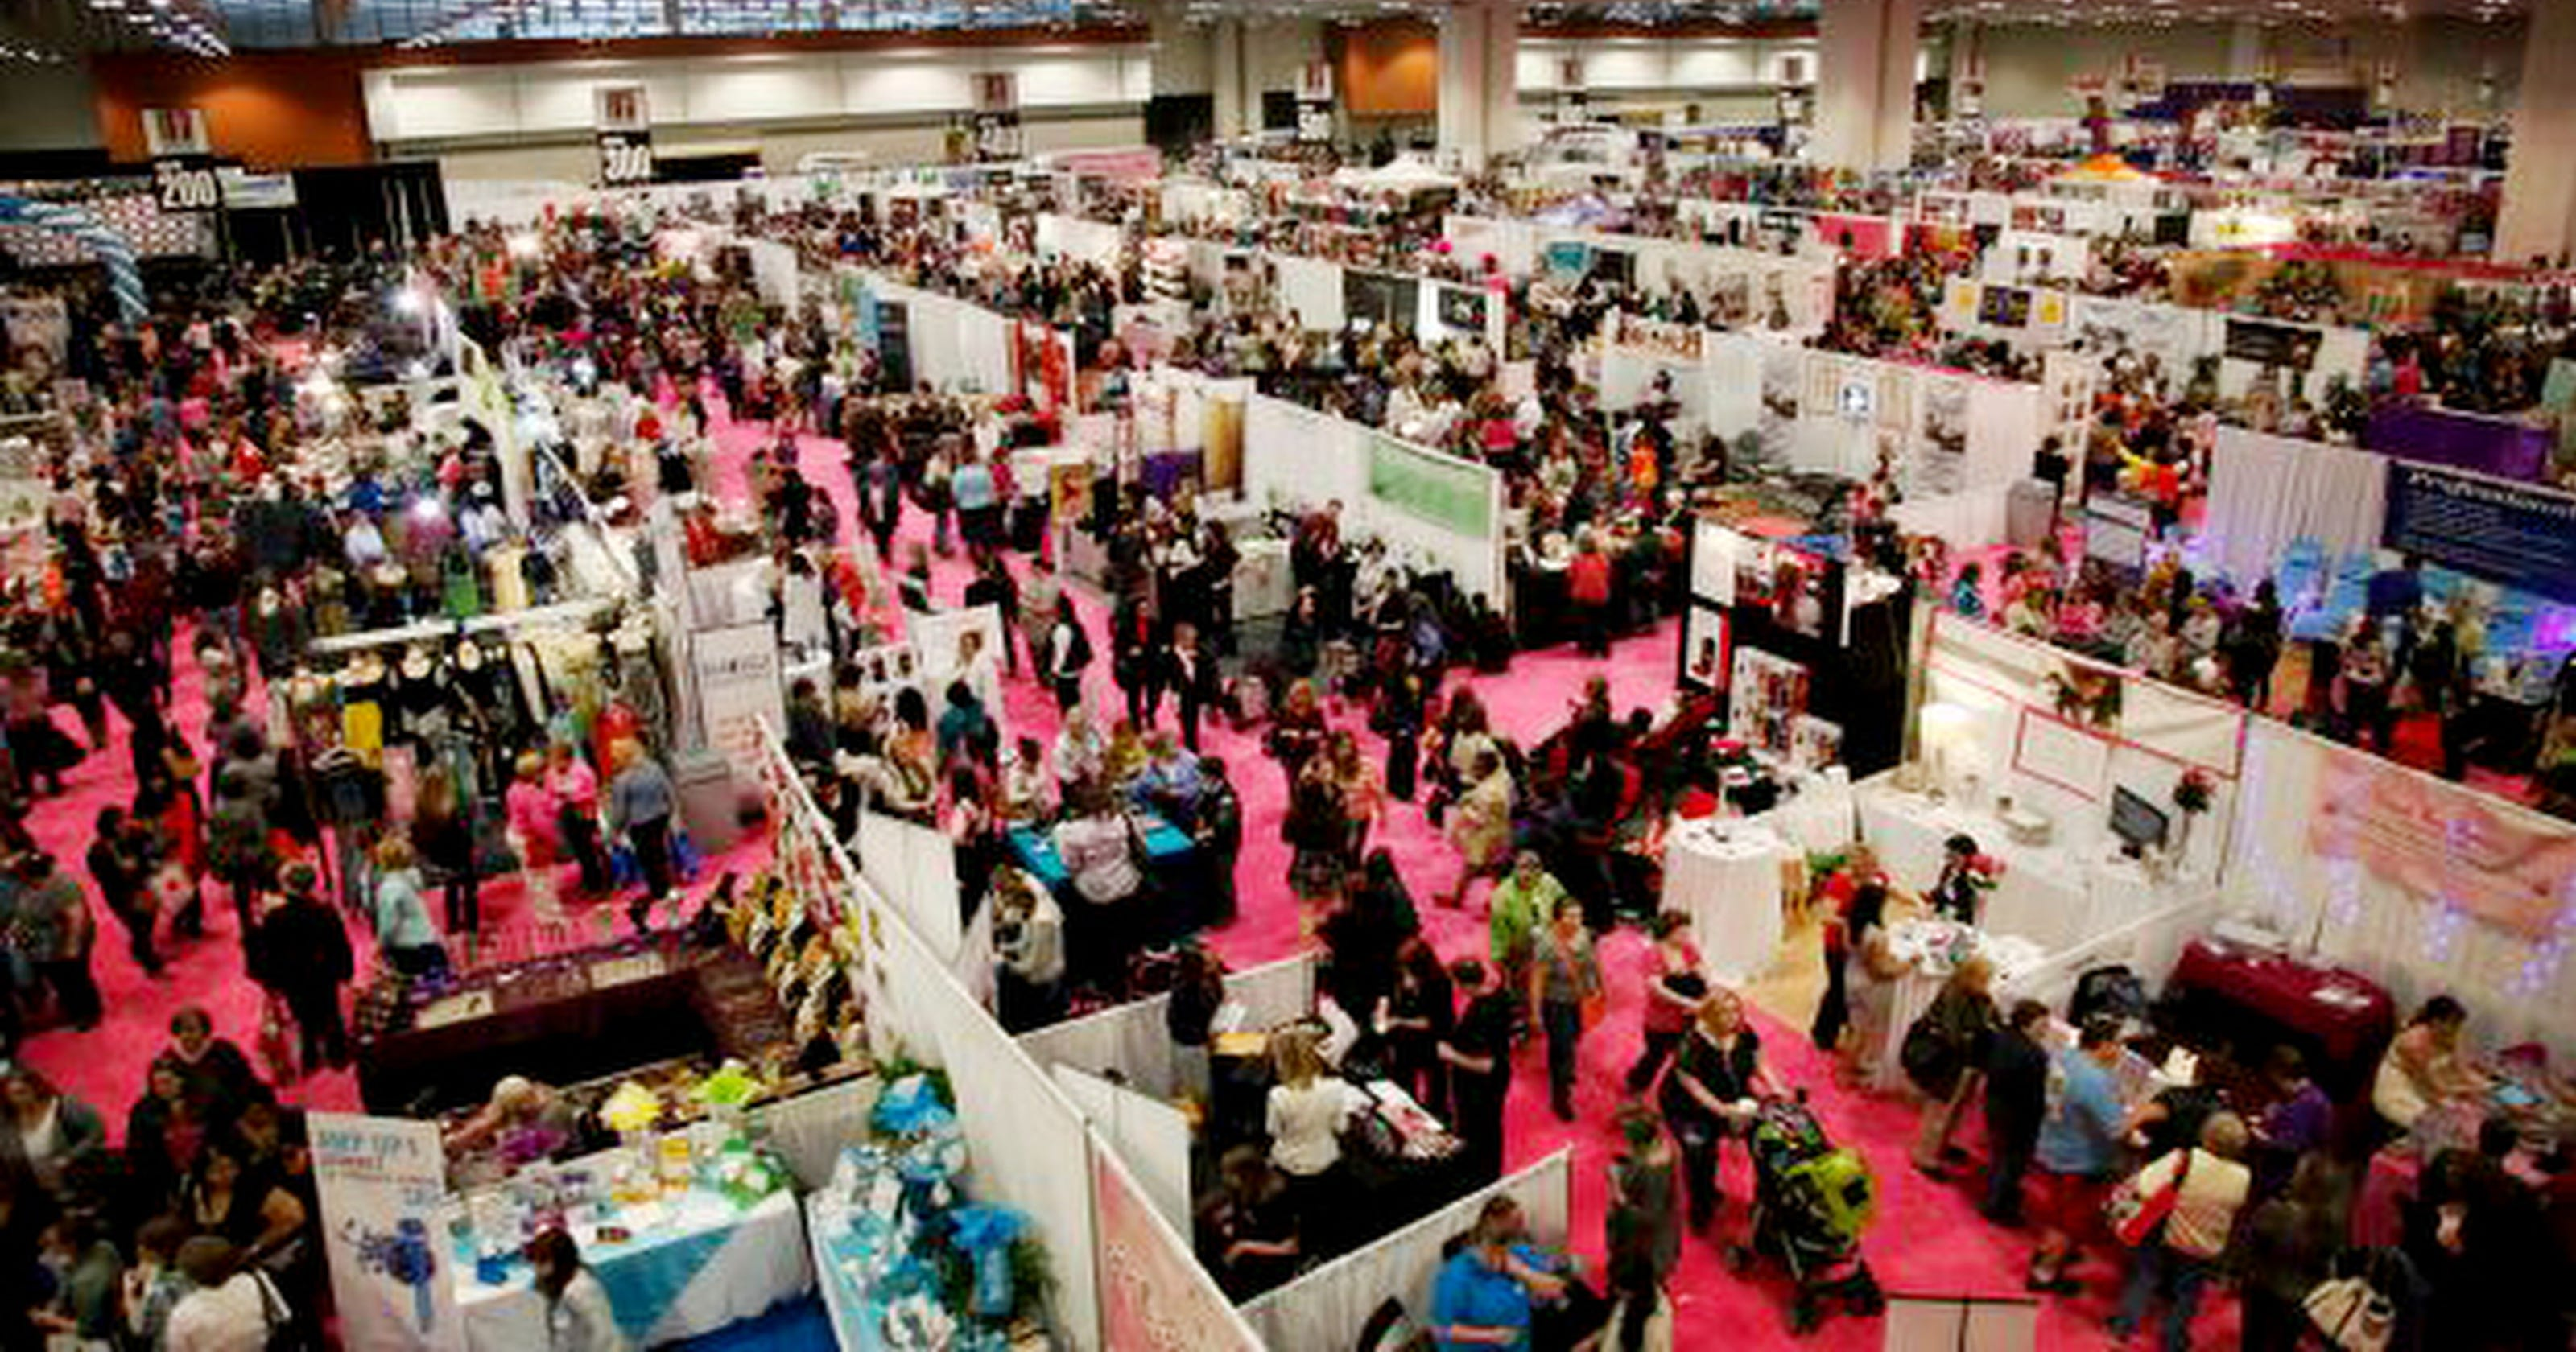 Southern Women's Show in Nashville: How to get the most out